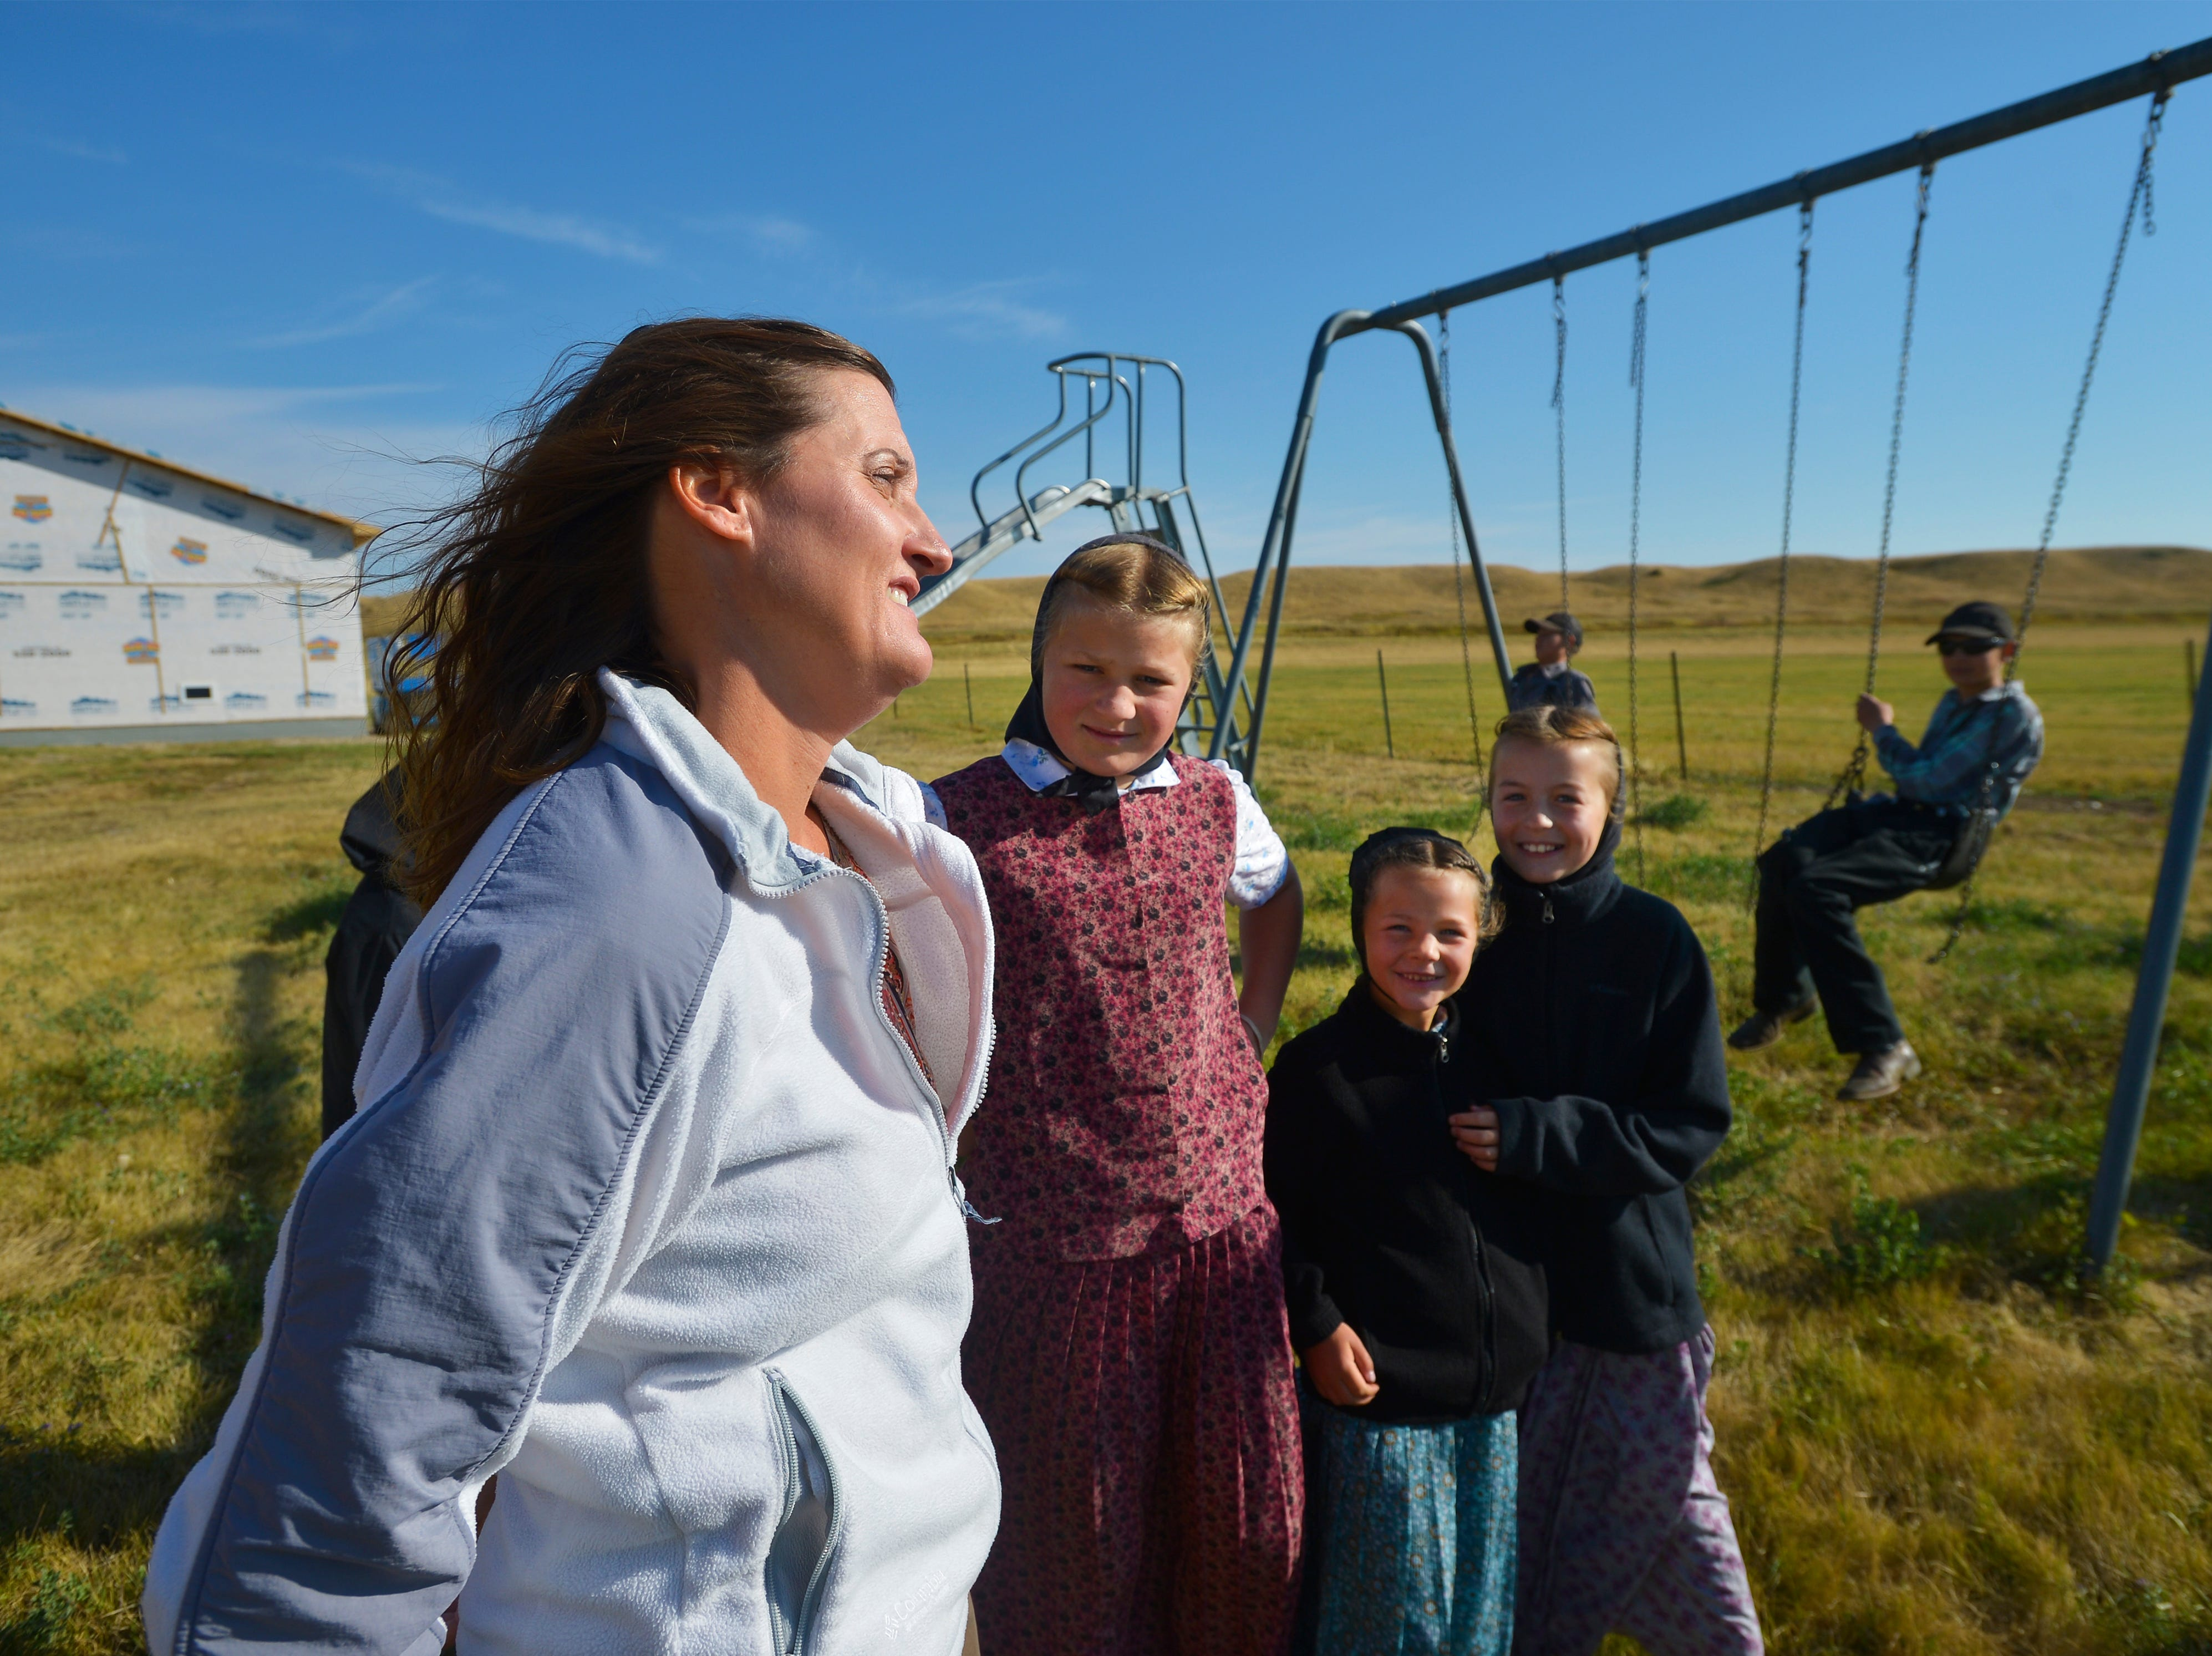 9:58 am: Traci Manseau watches her kids during recess, Monday, Sept. 17, 2018.  Manseau is a teaching veteran of 23 years and she has spent her entire career teaching in one room rural school houses.  She is currently teaching 15 students across seven different grade levels at the Deerfield Hutterite Colony in North Central Montana's Fergus County.